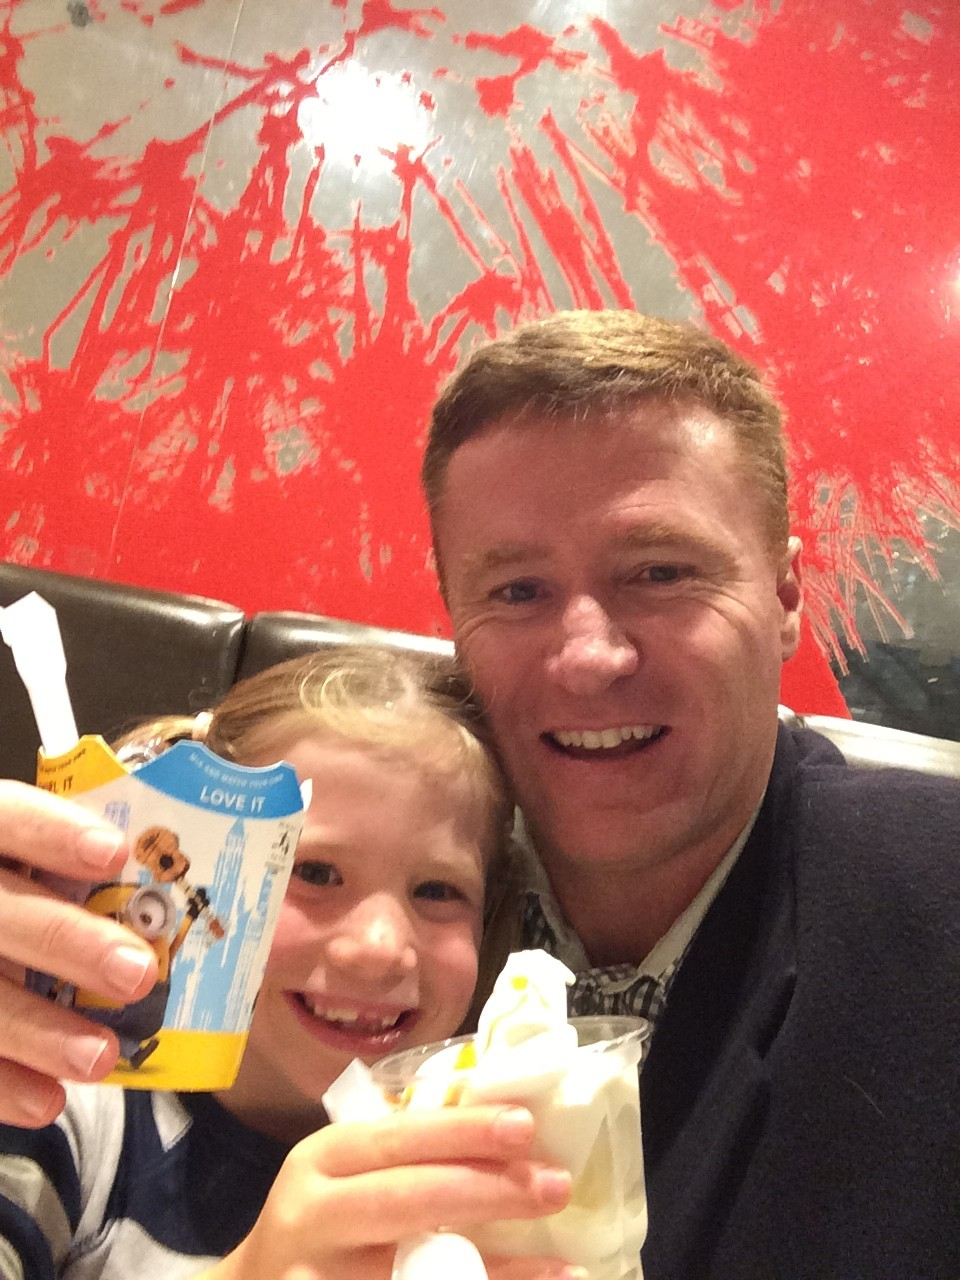 Michael Carmody having an ice-cream date with his daughter